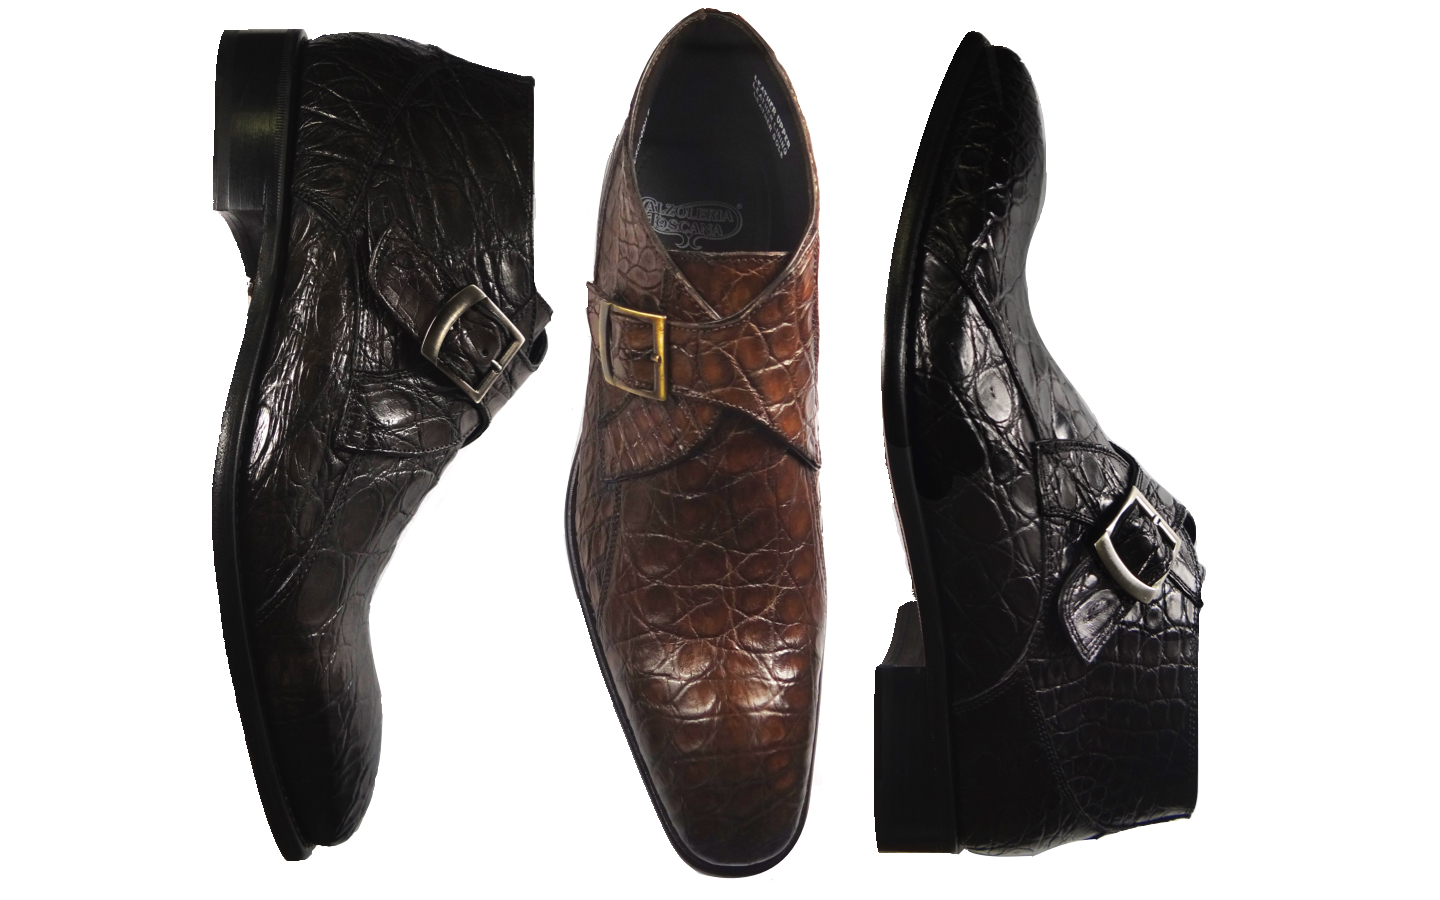 Style # 8306: Stone, Cerris, Black  Caiman Flanks Handpainted Monk Strap Demi Boot   Sizes available: 41 to 47 EU, including half sizes